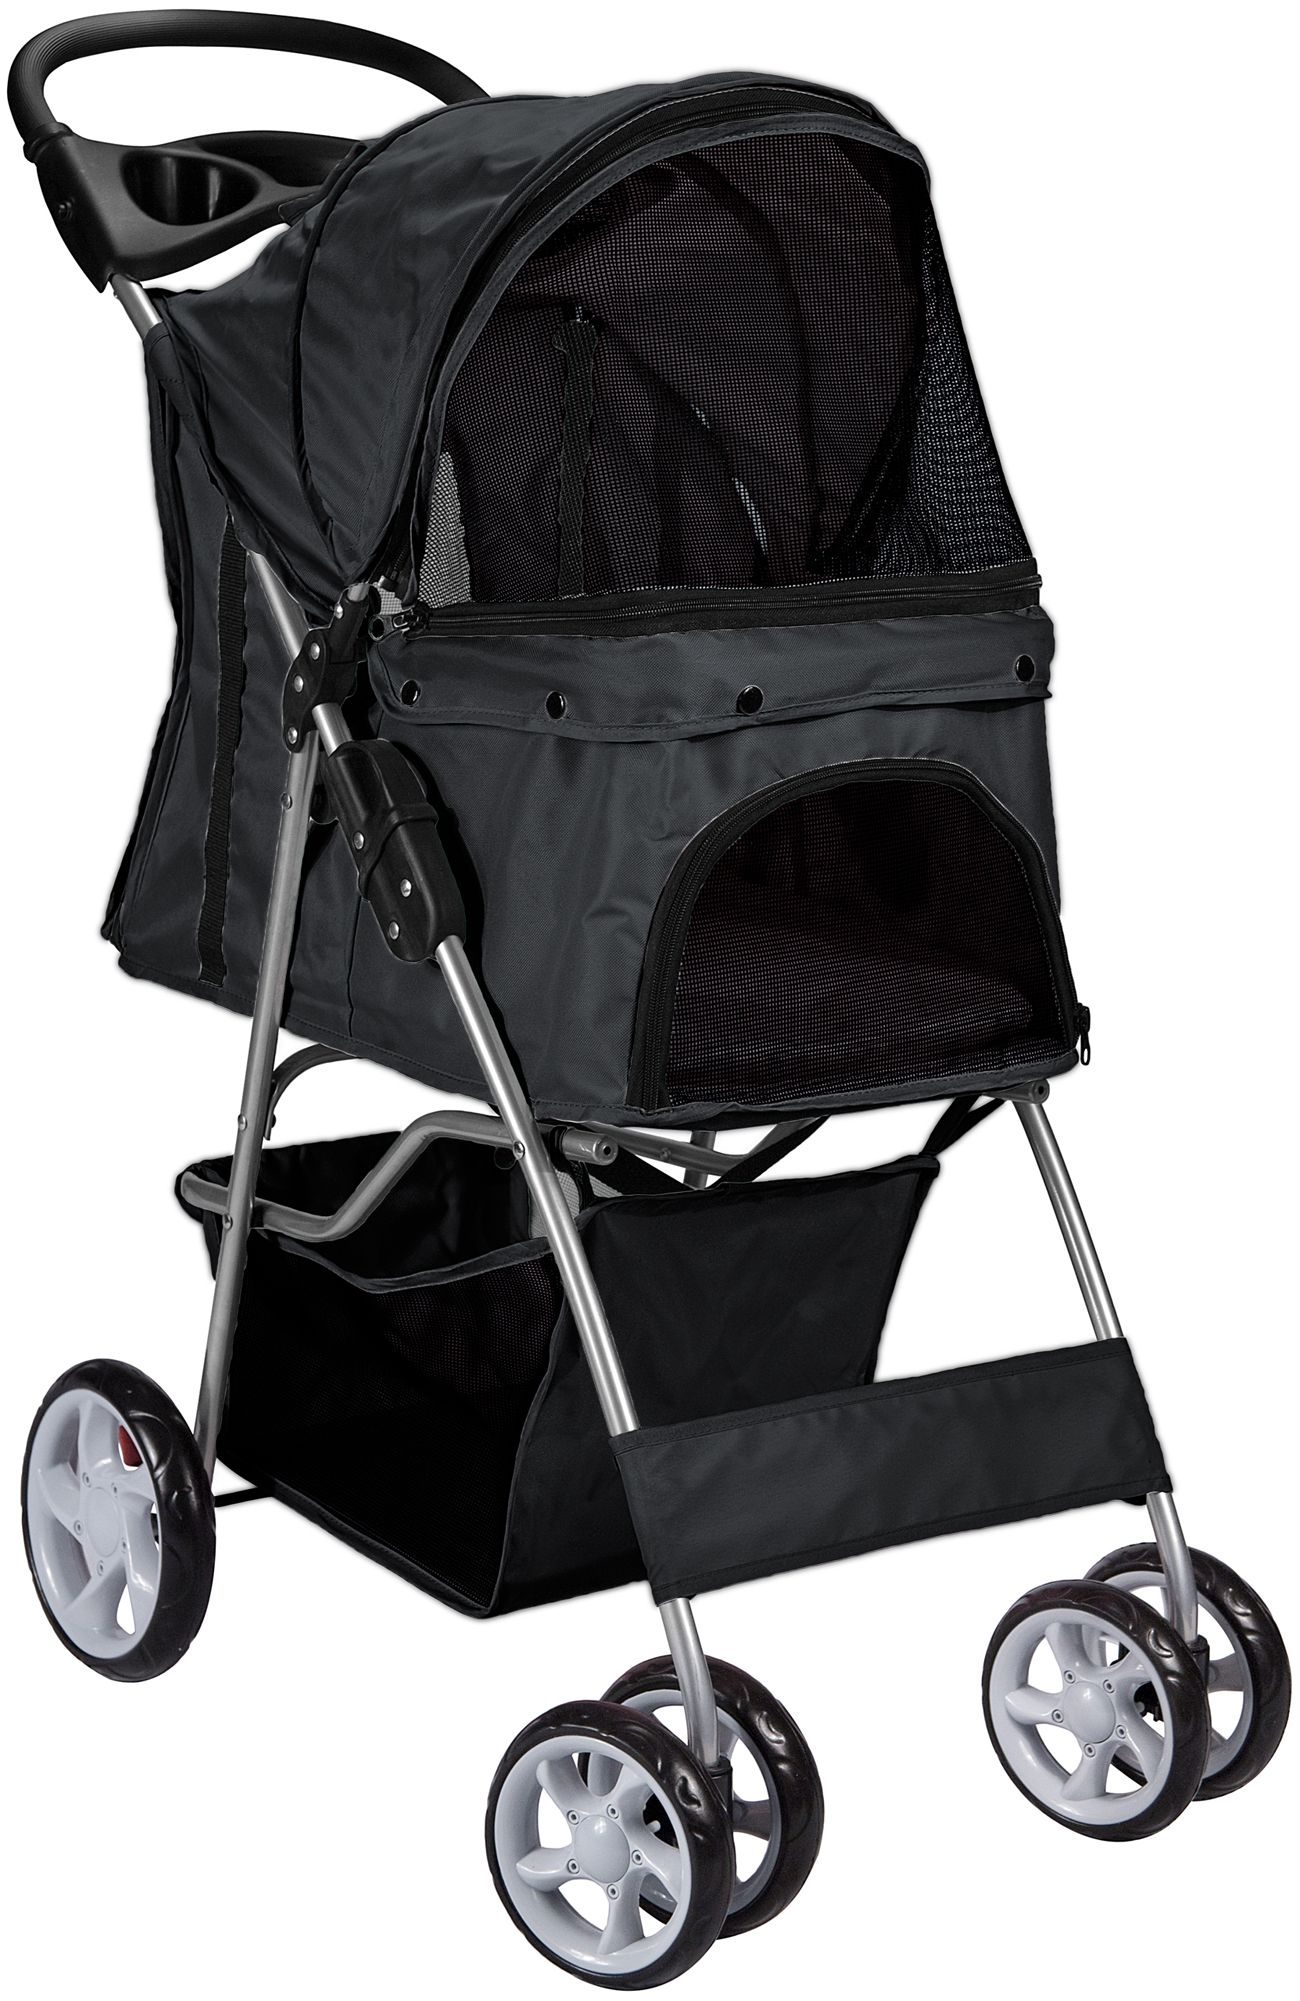 Paws & Pals Folding Pet Stroller, Black in